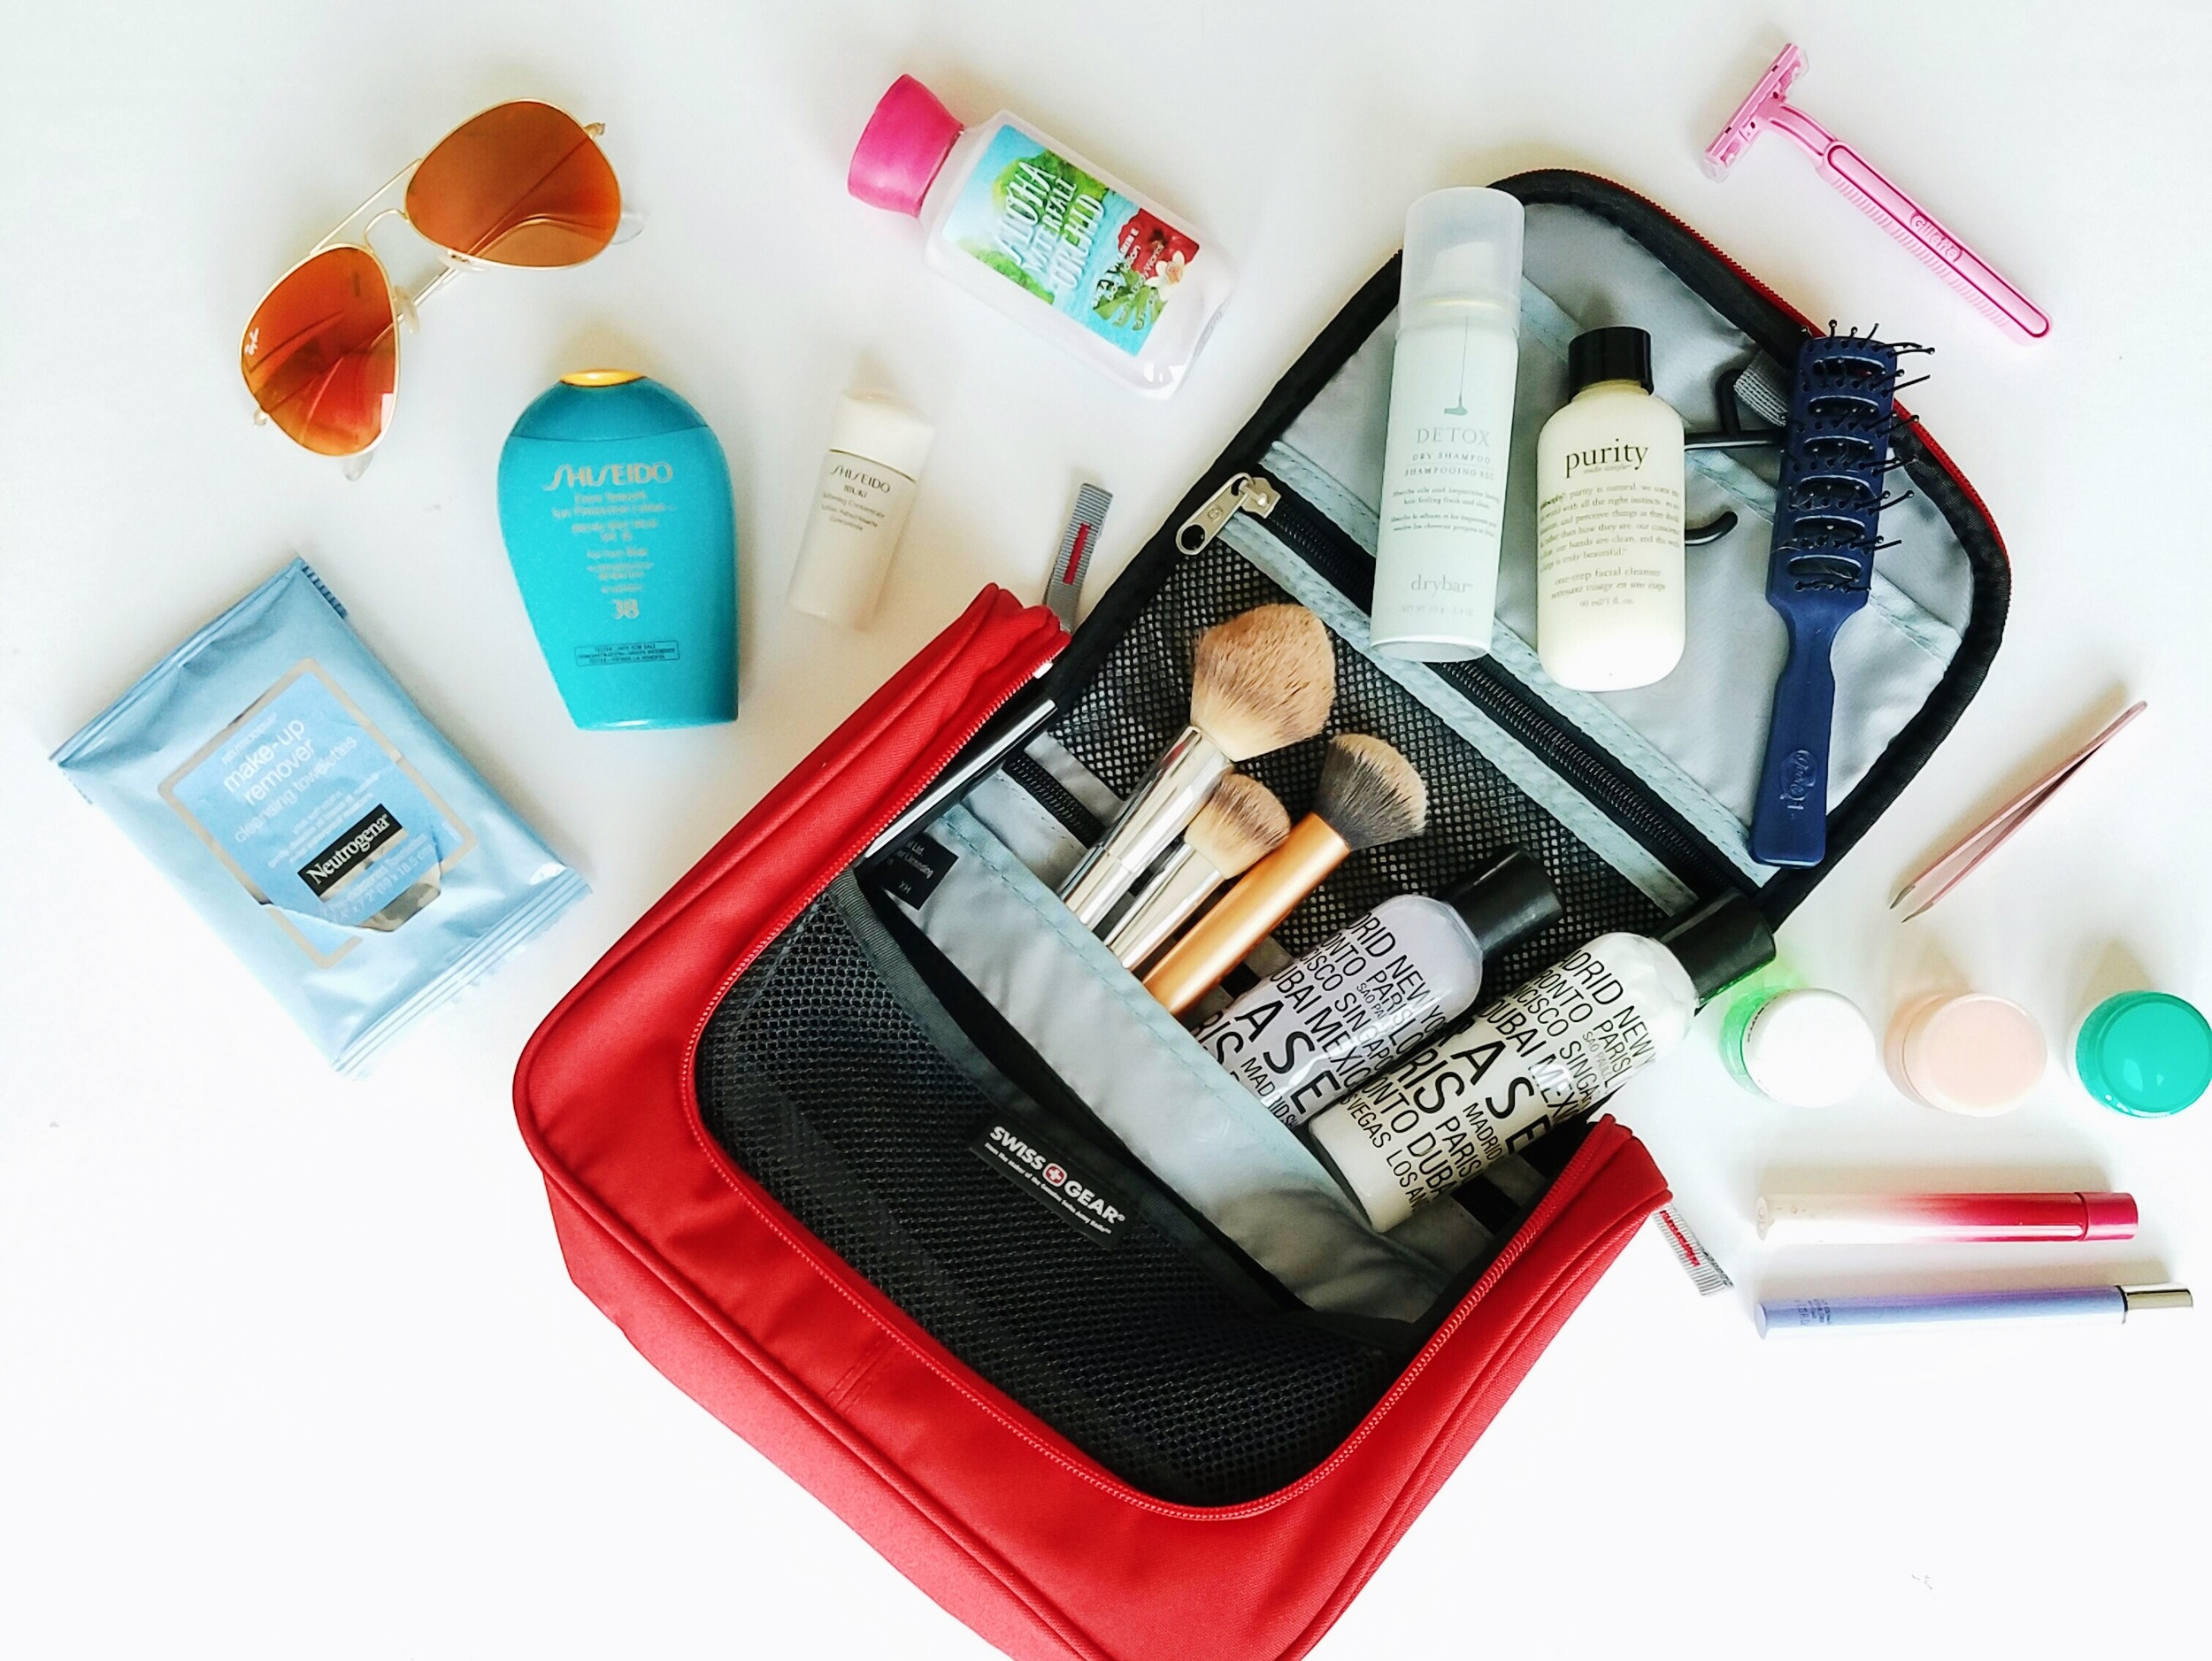 This hanging toiletry kit is the most practical I've ever owned. I cannot believe how much it can hold and it's not bulky. It's sleek style allows me to fit it in any carry on I have.